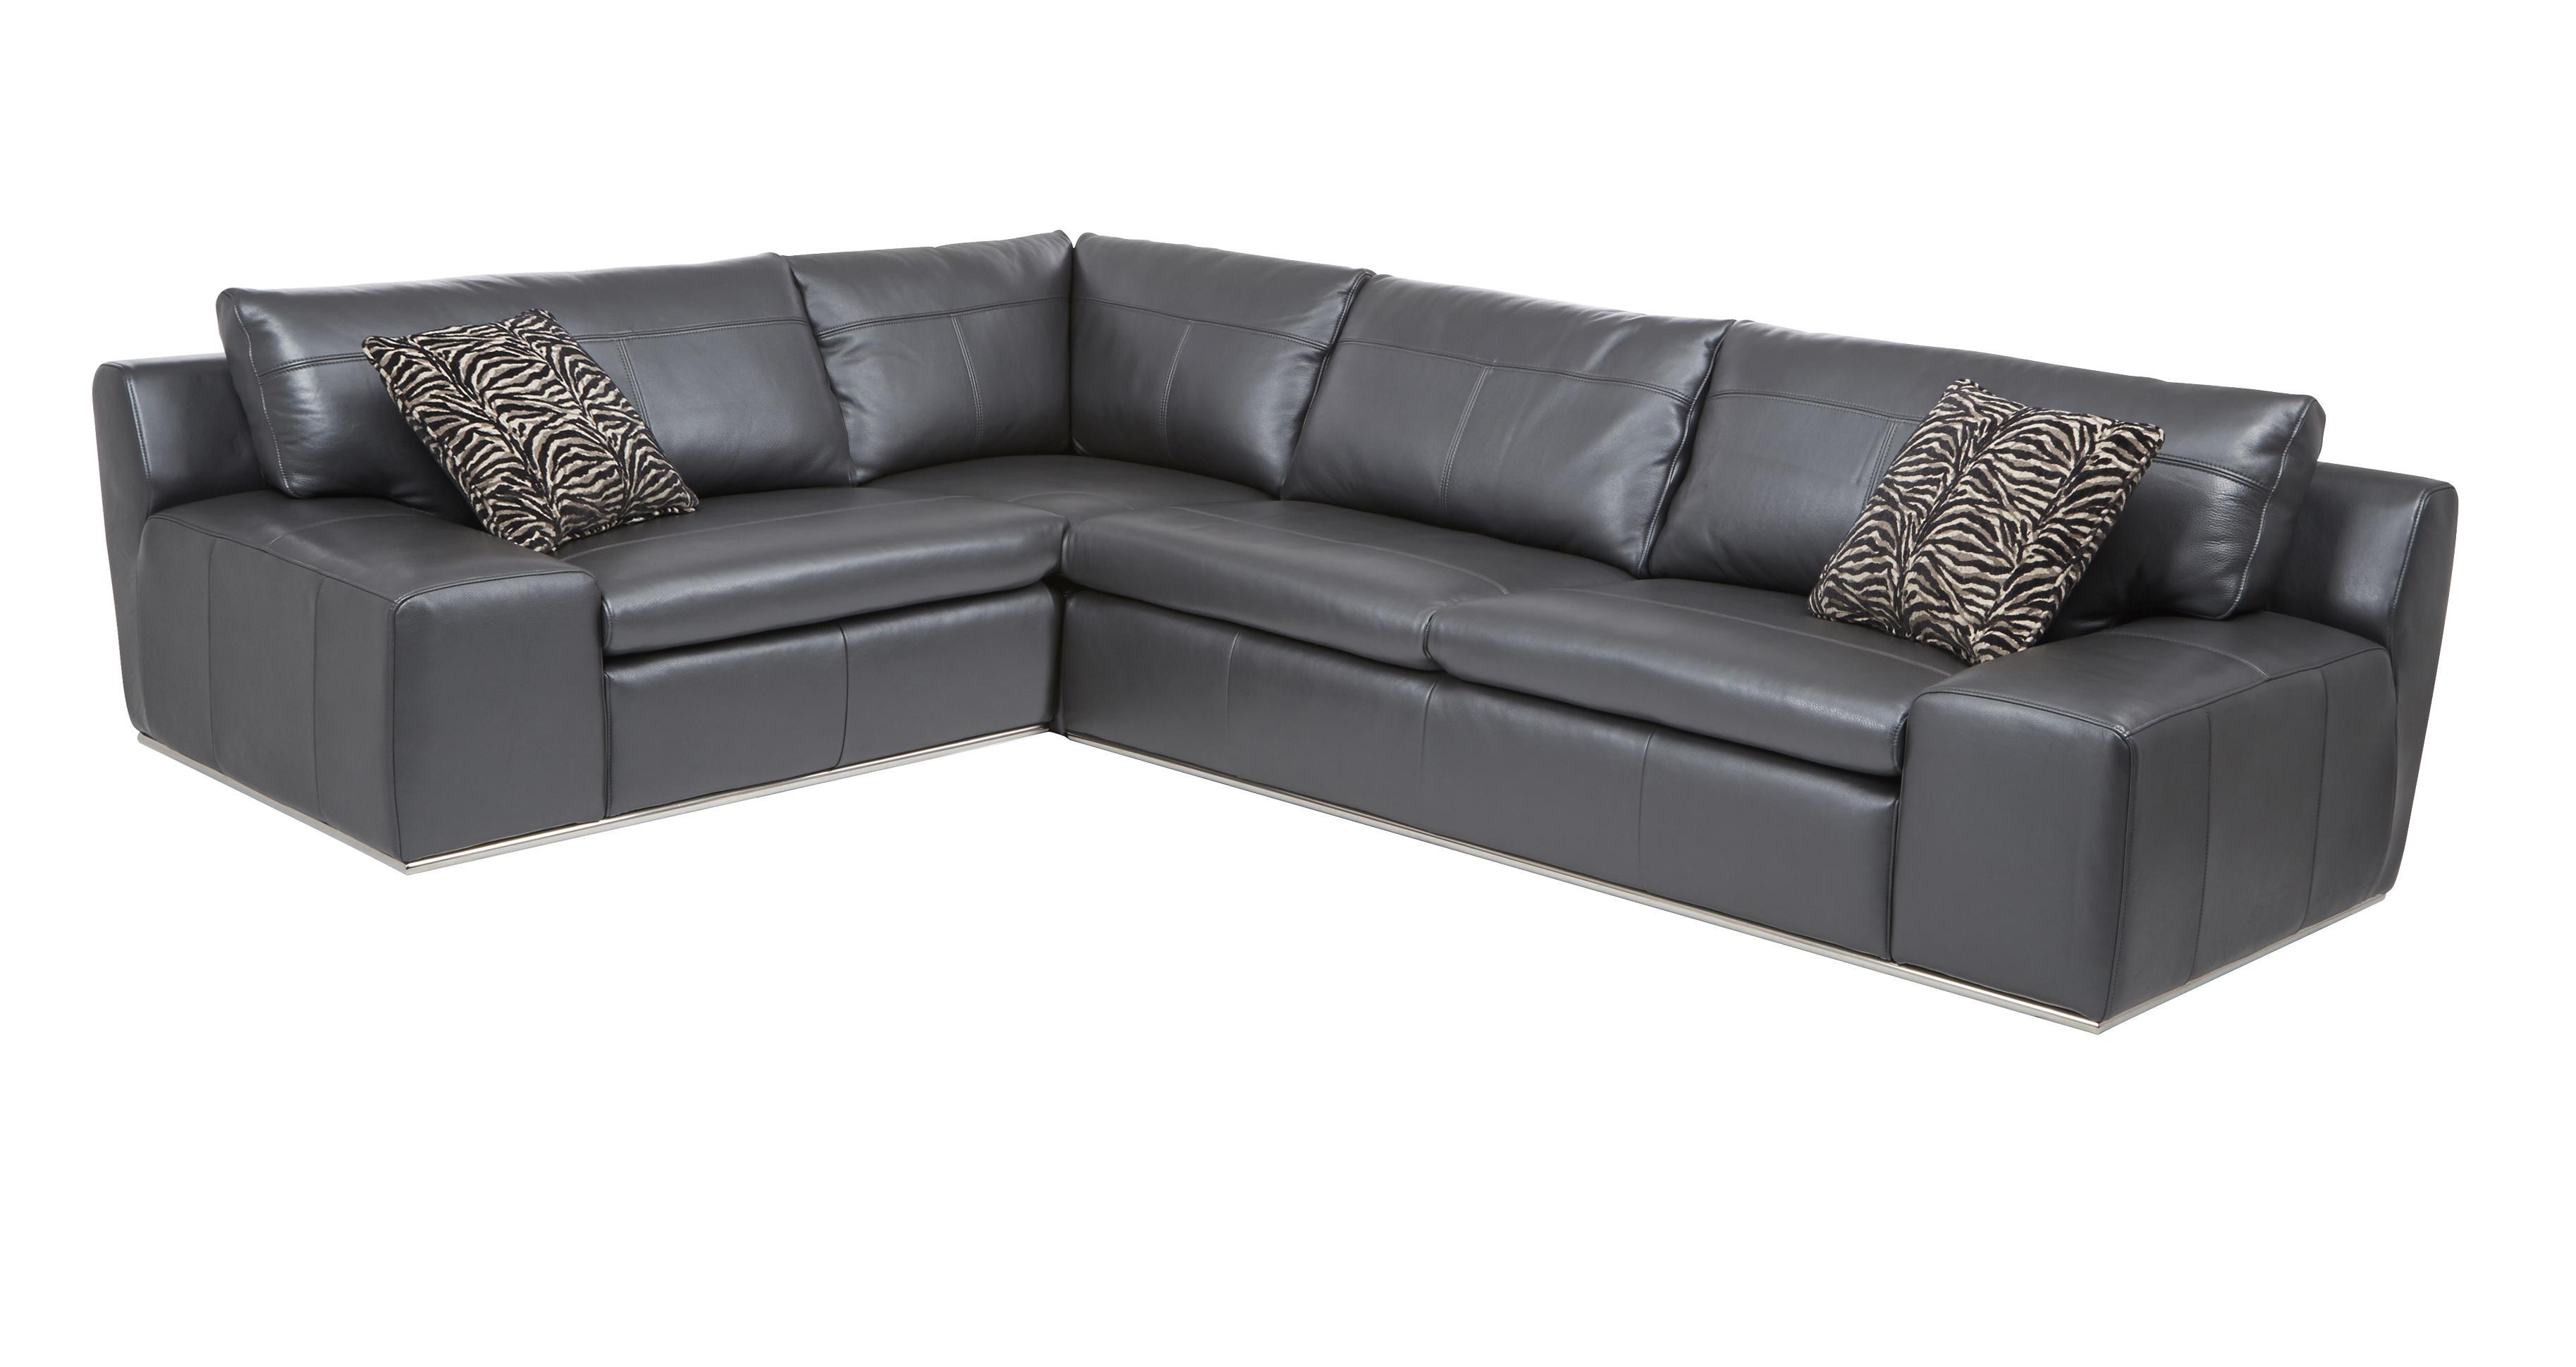 Sofas Center : Leather Corner Sofa Sofas Uk Clearanceleather Pertaining To Leather Corner Sofas (View 17 of 20)